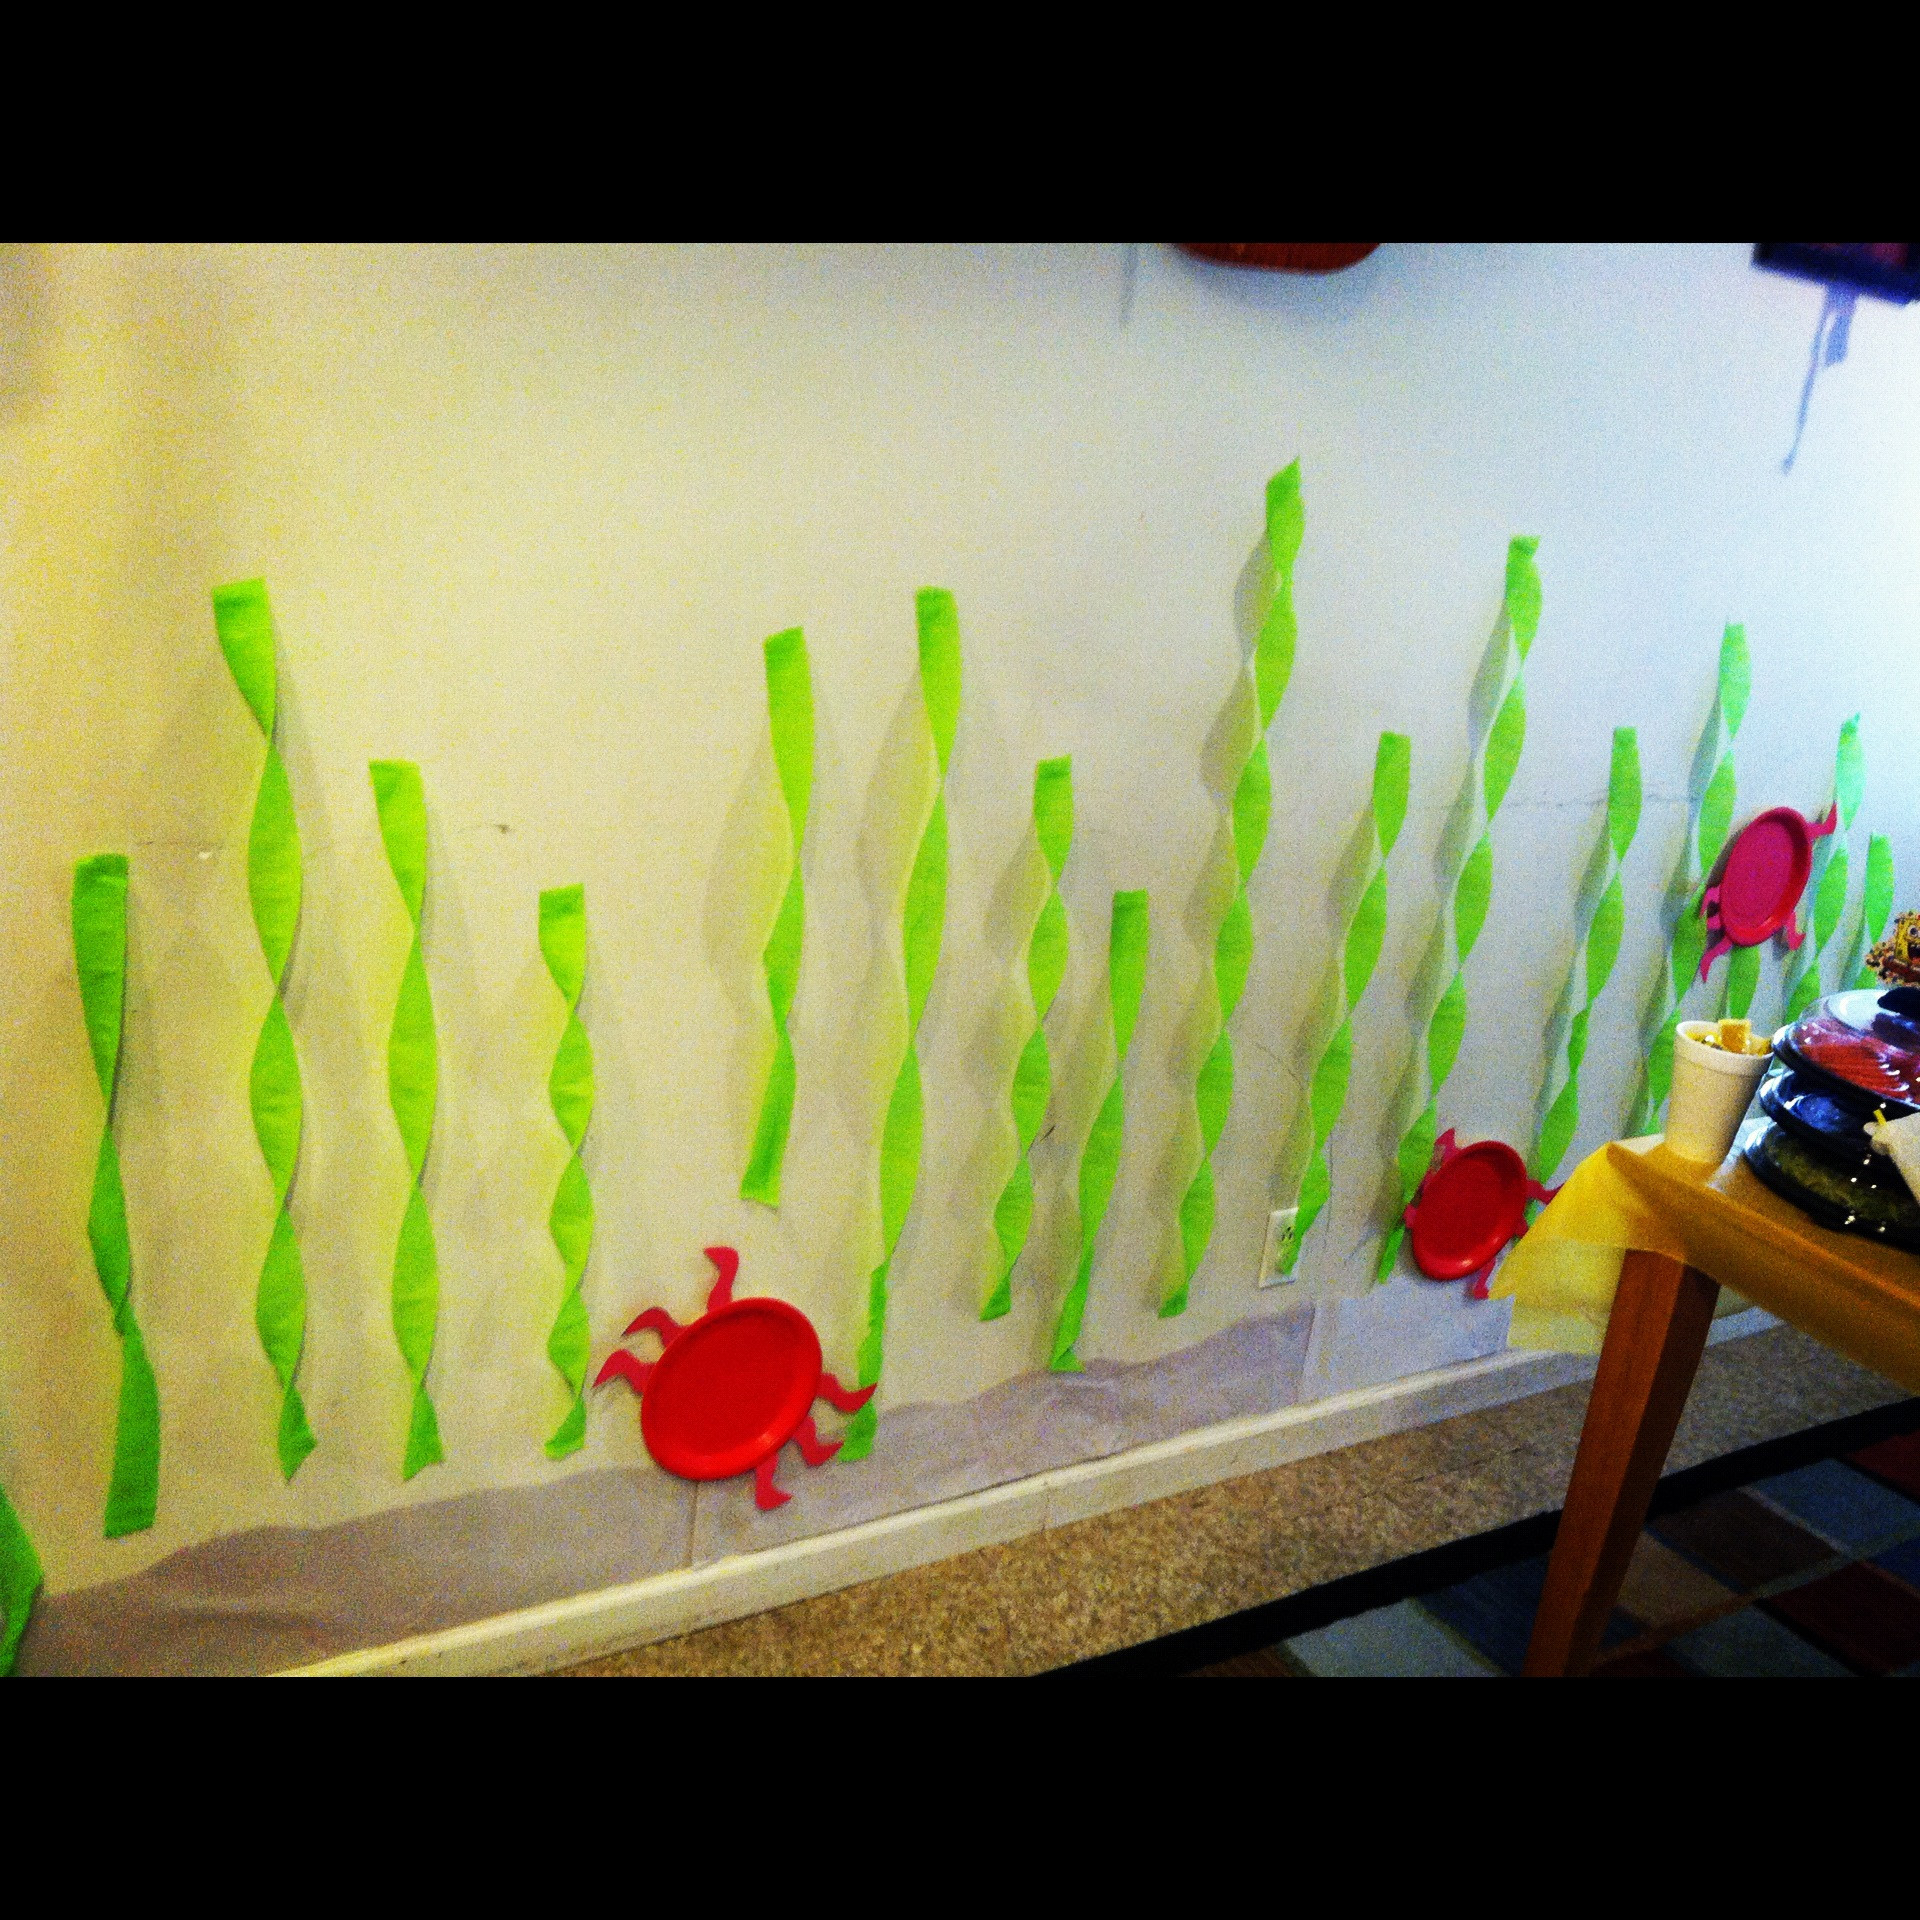 Spongebob party – Kelp Background with little red crabs